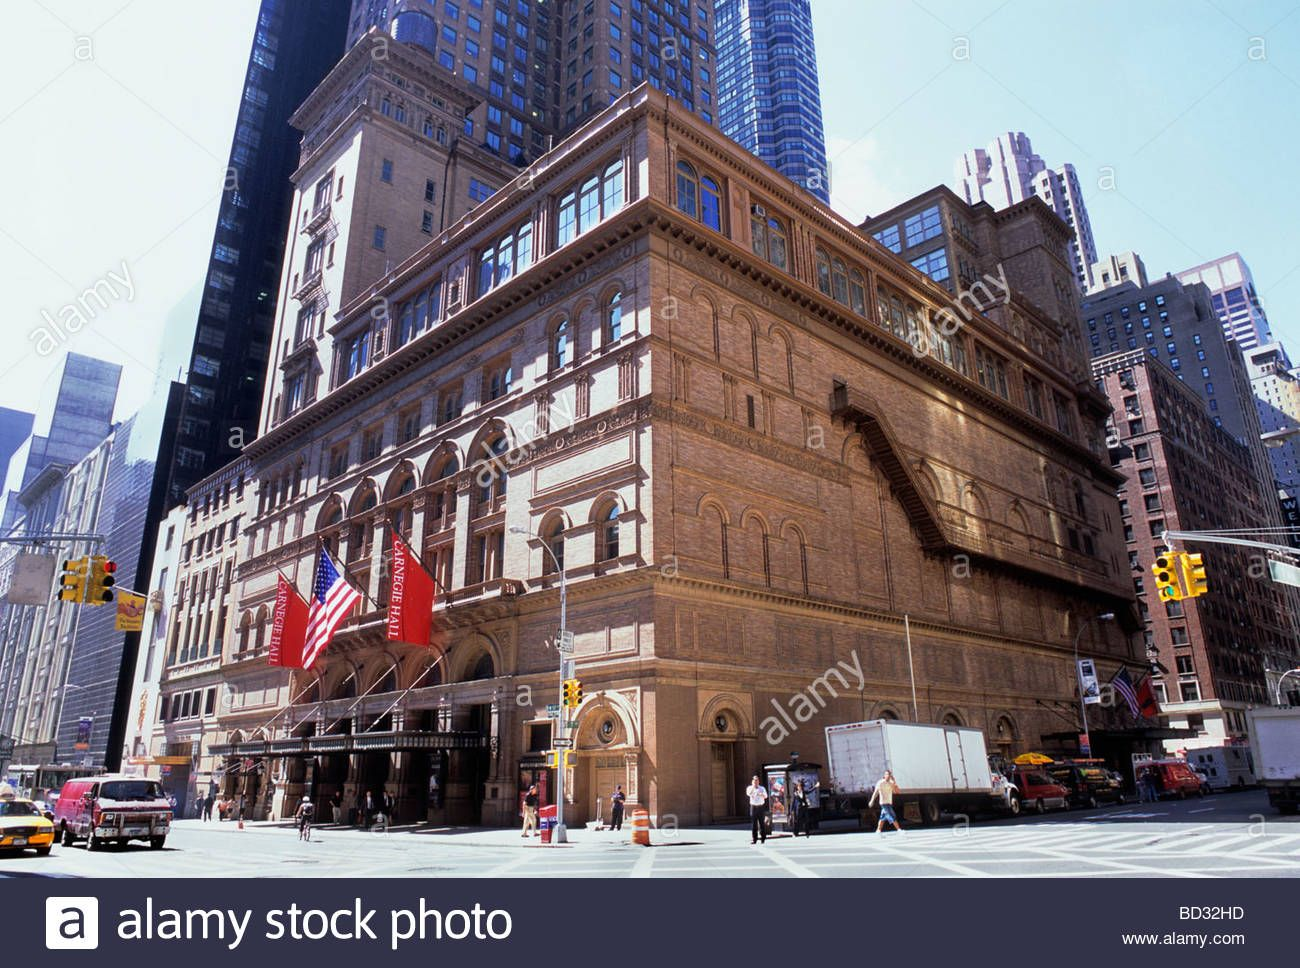 New York City Carnegie Hall Building Exterior and The Russian Tea Room USA